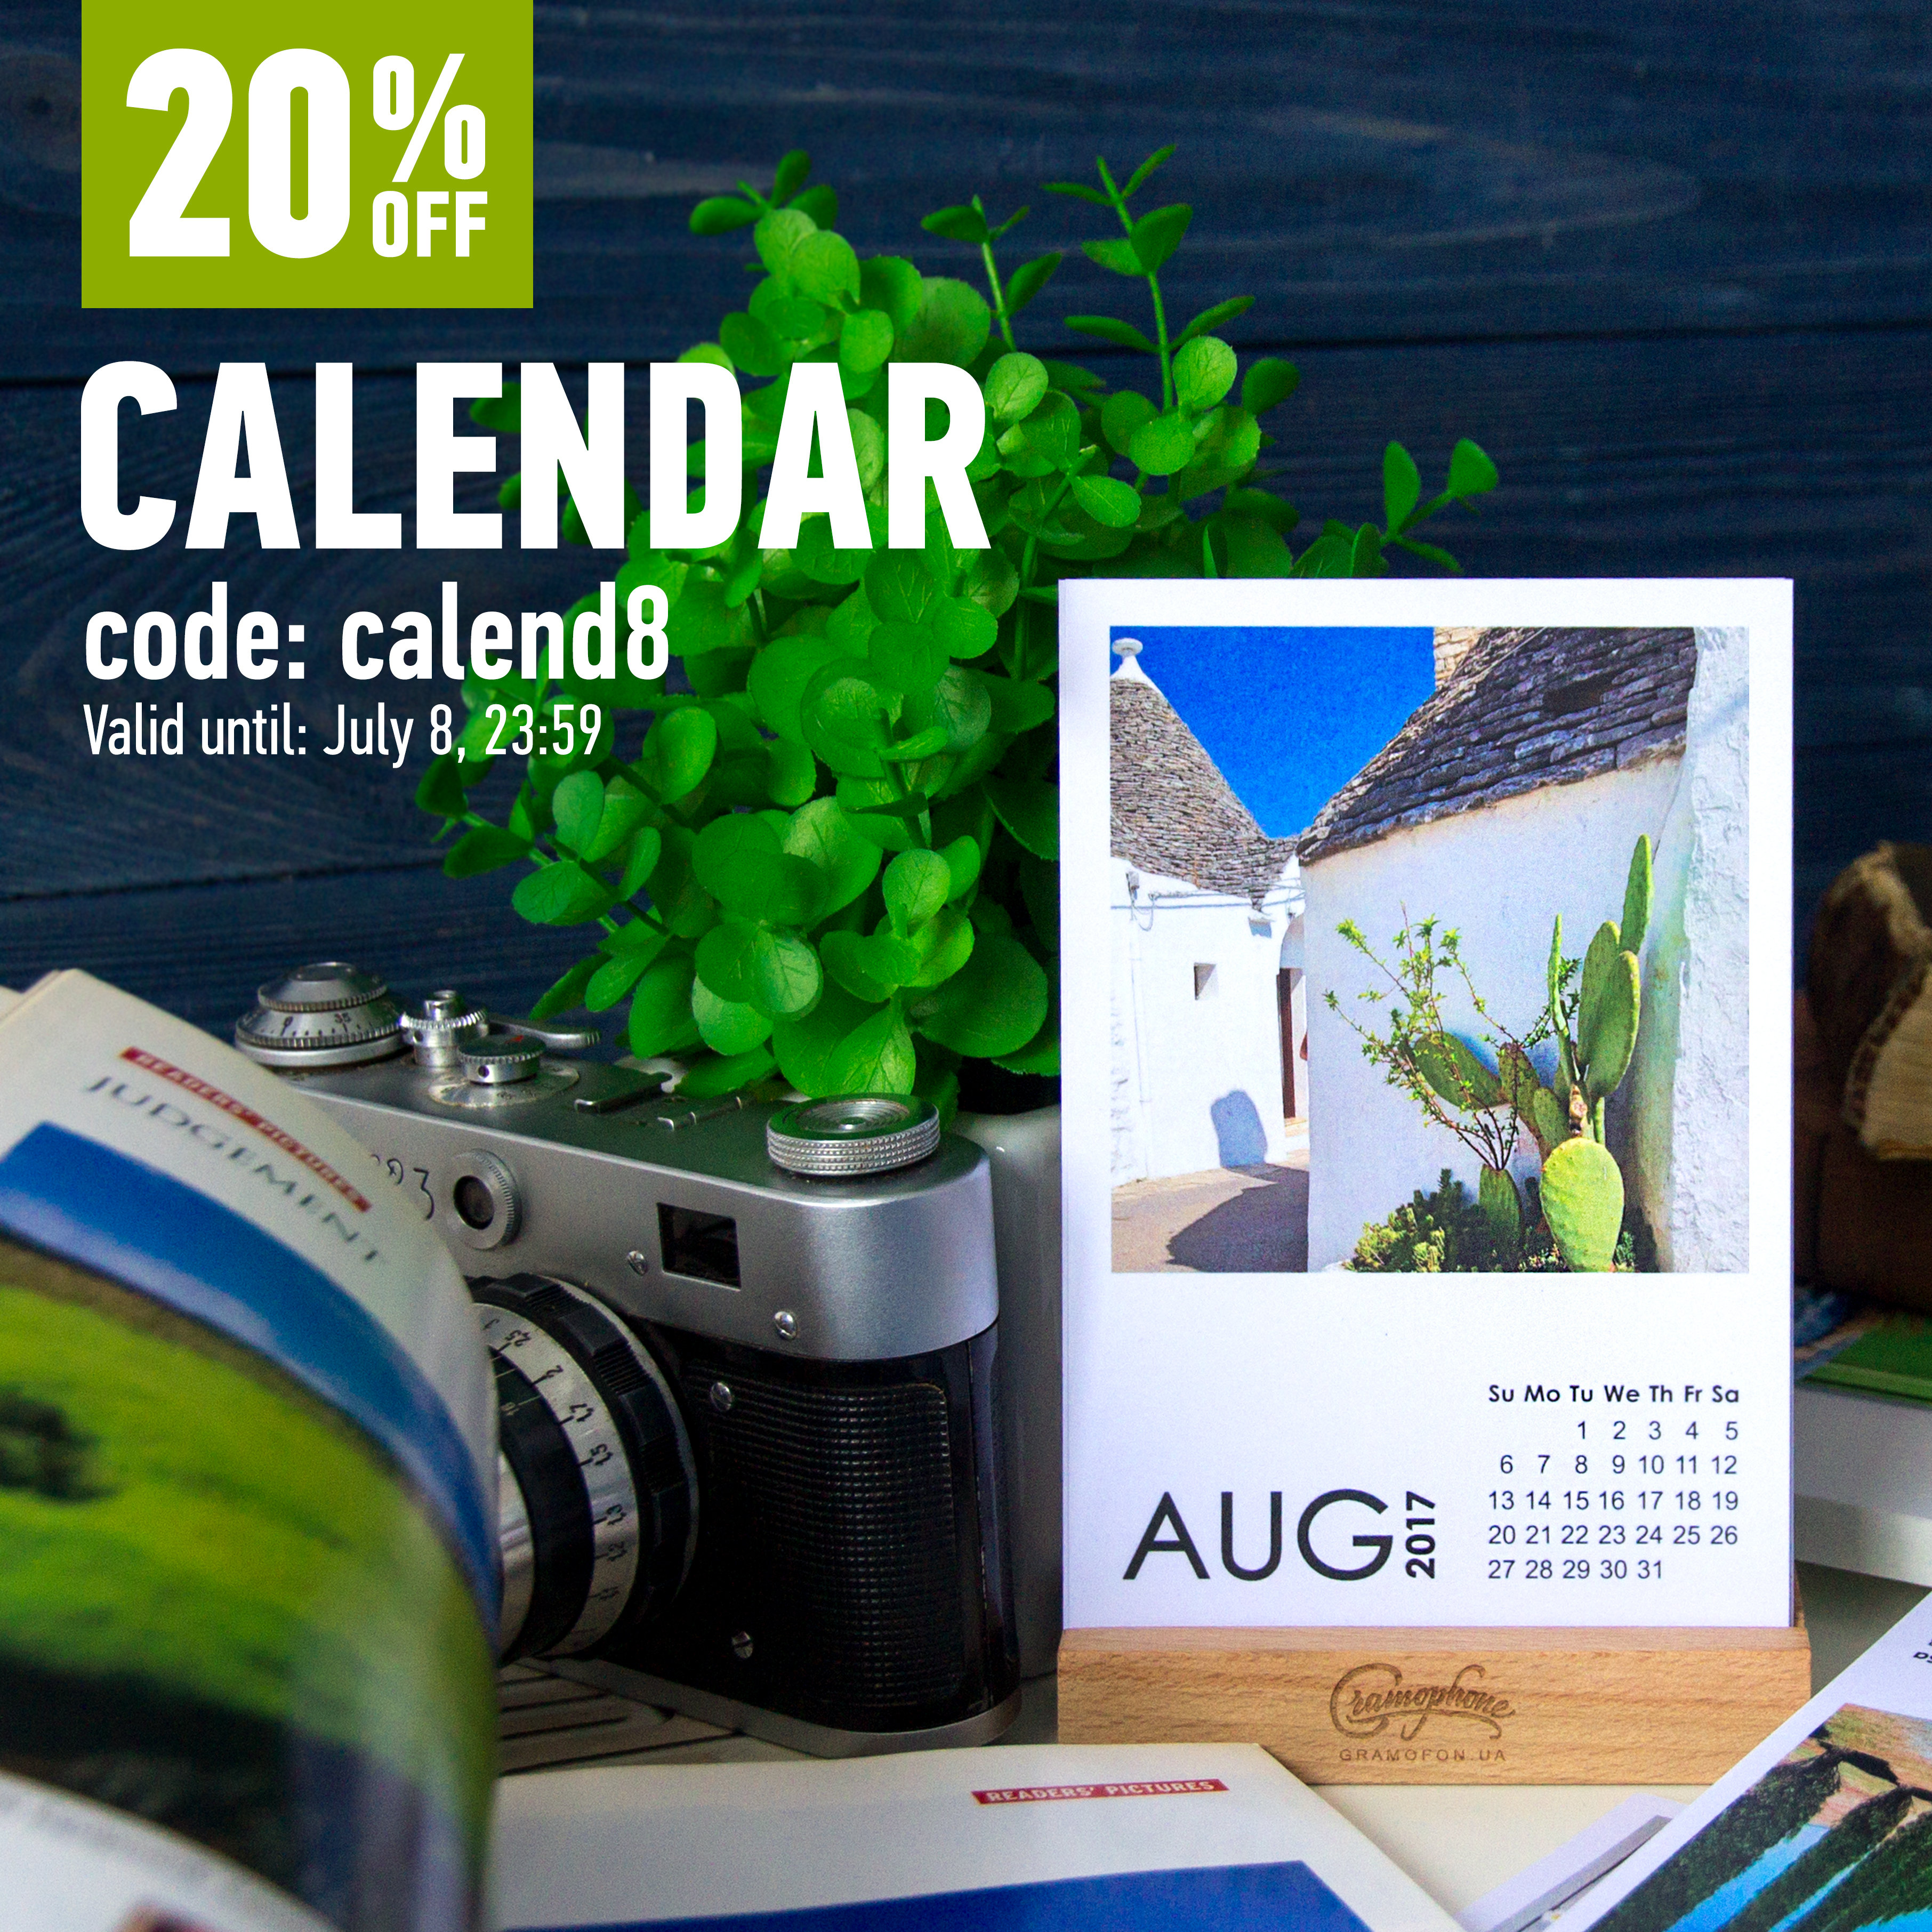 20% off for calendars